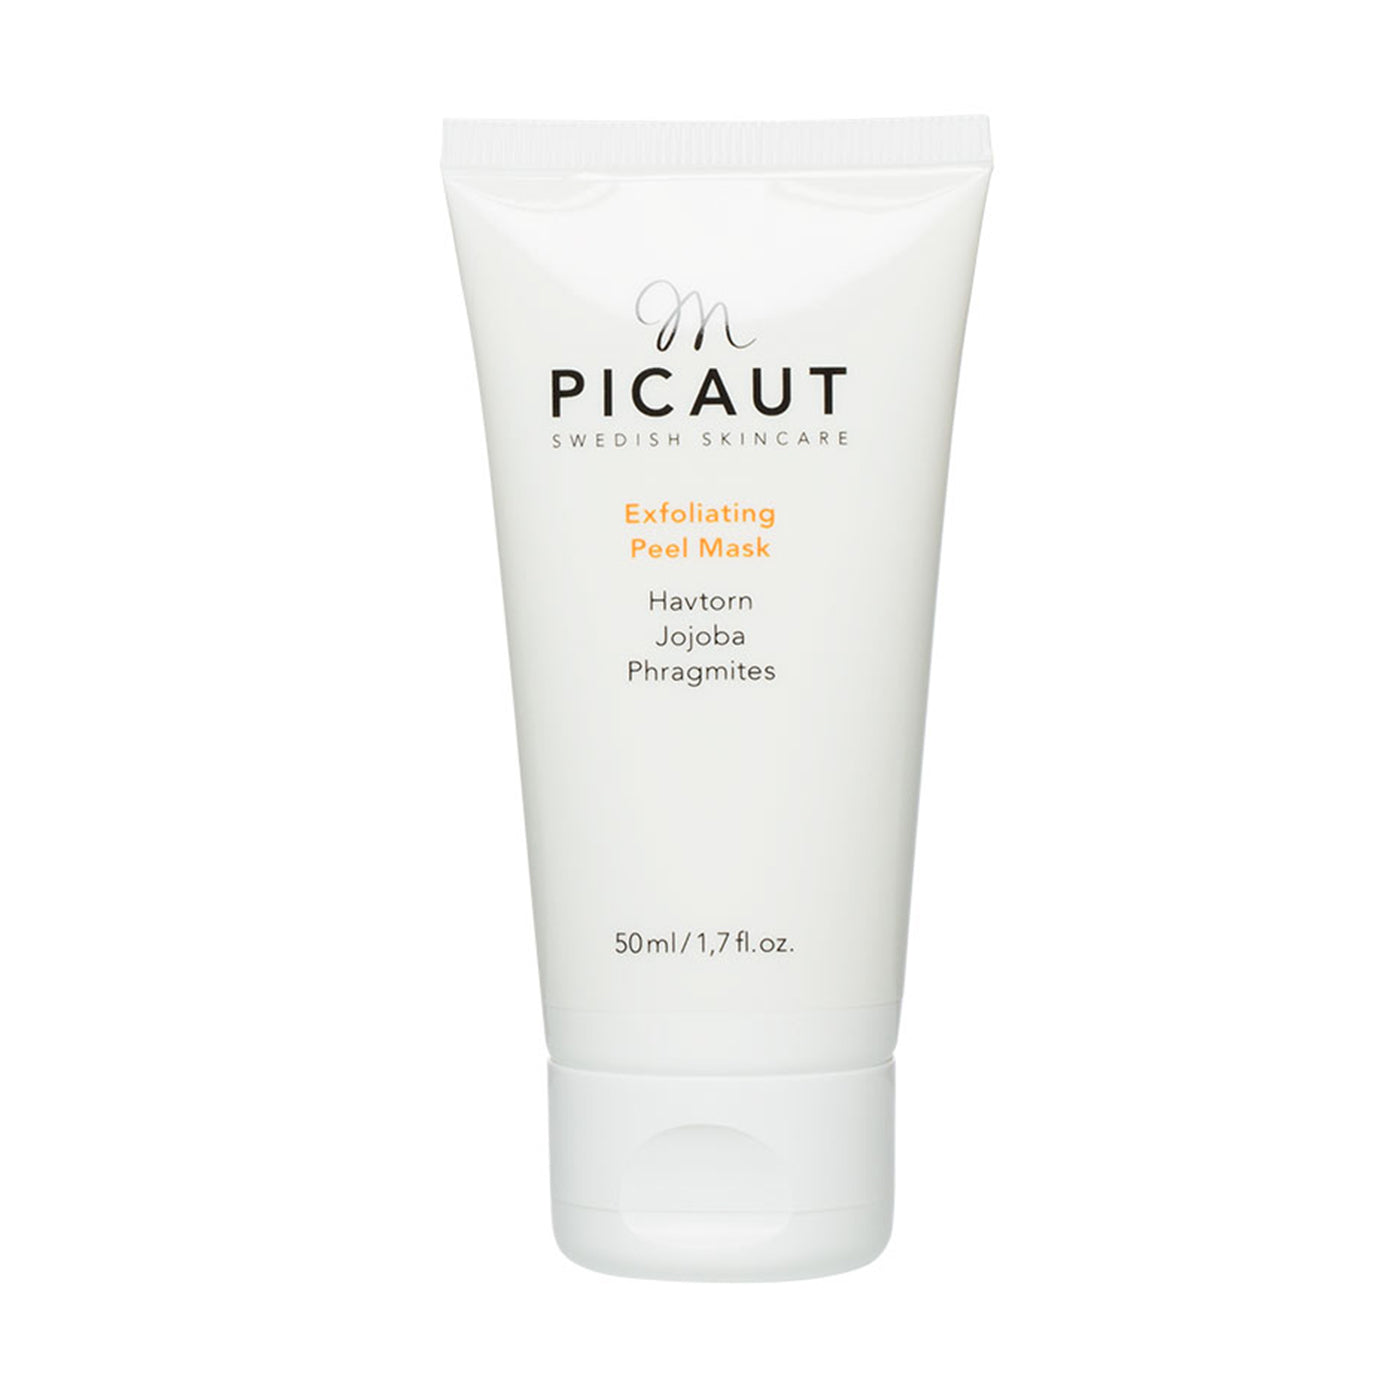 M Picaut Exfoliating Peel Mask 1.7oz